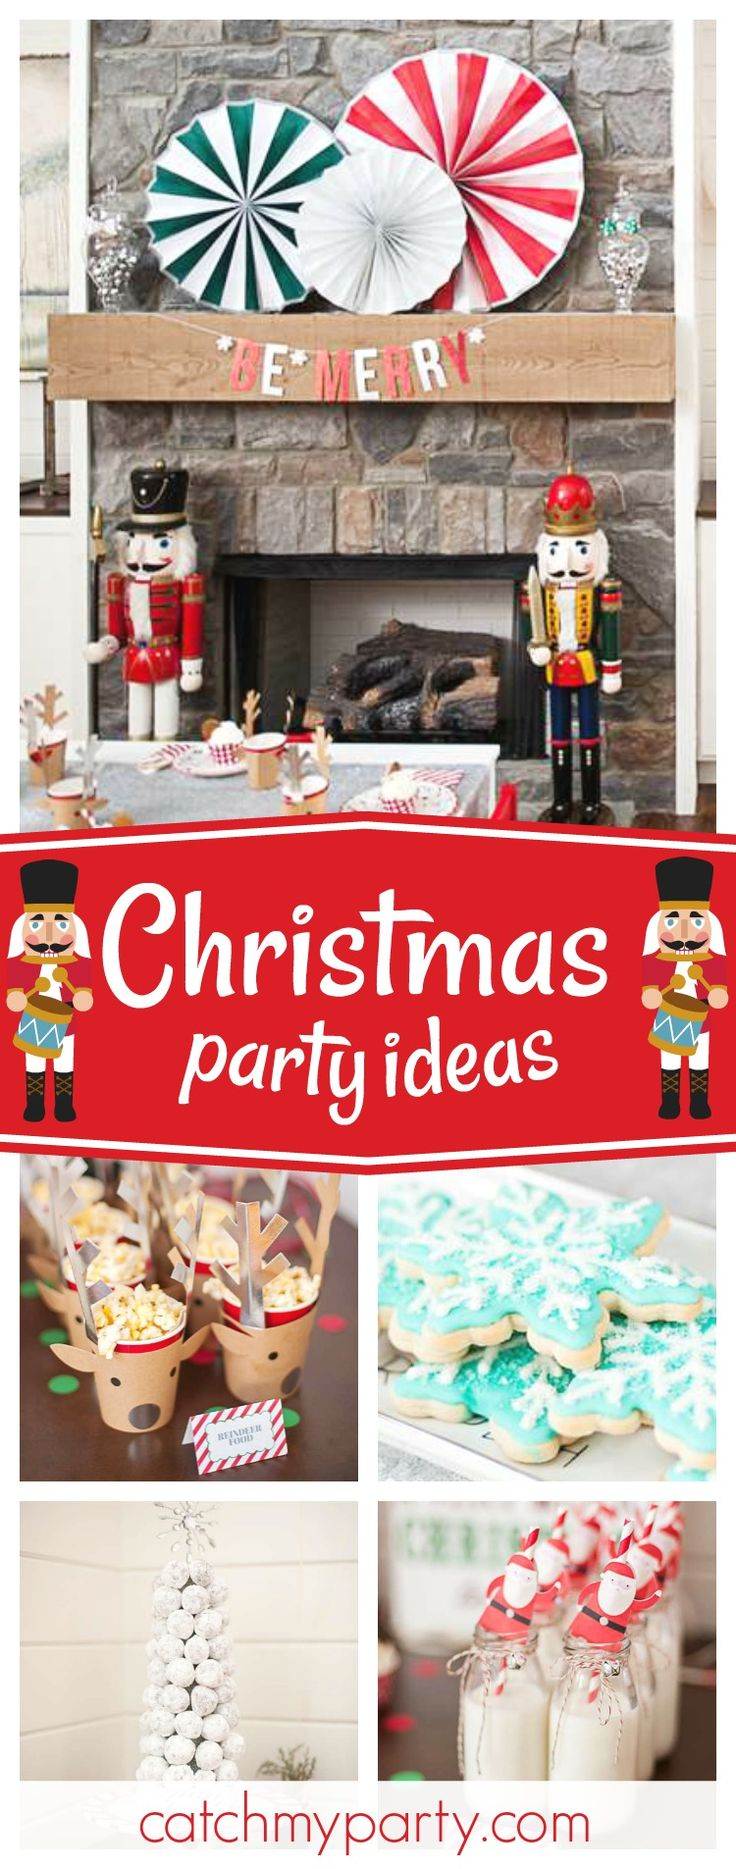 Take a look at this fun Christmas party! The reindeer paper cups are delightful!! See more party ideas and share yours at CatchMyParty.com #christmasparty #christmas #holiday